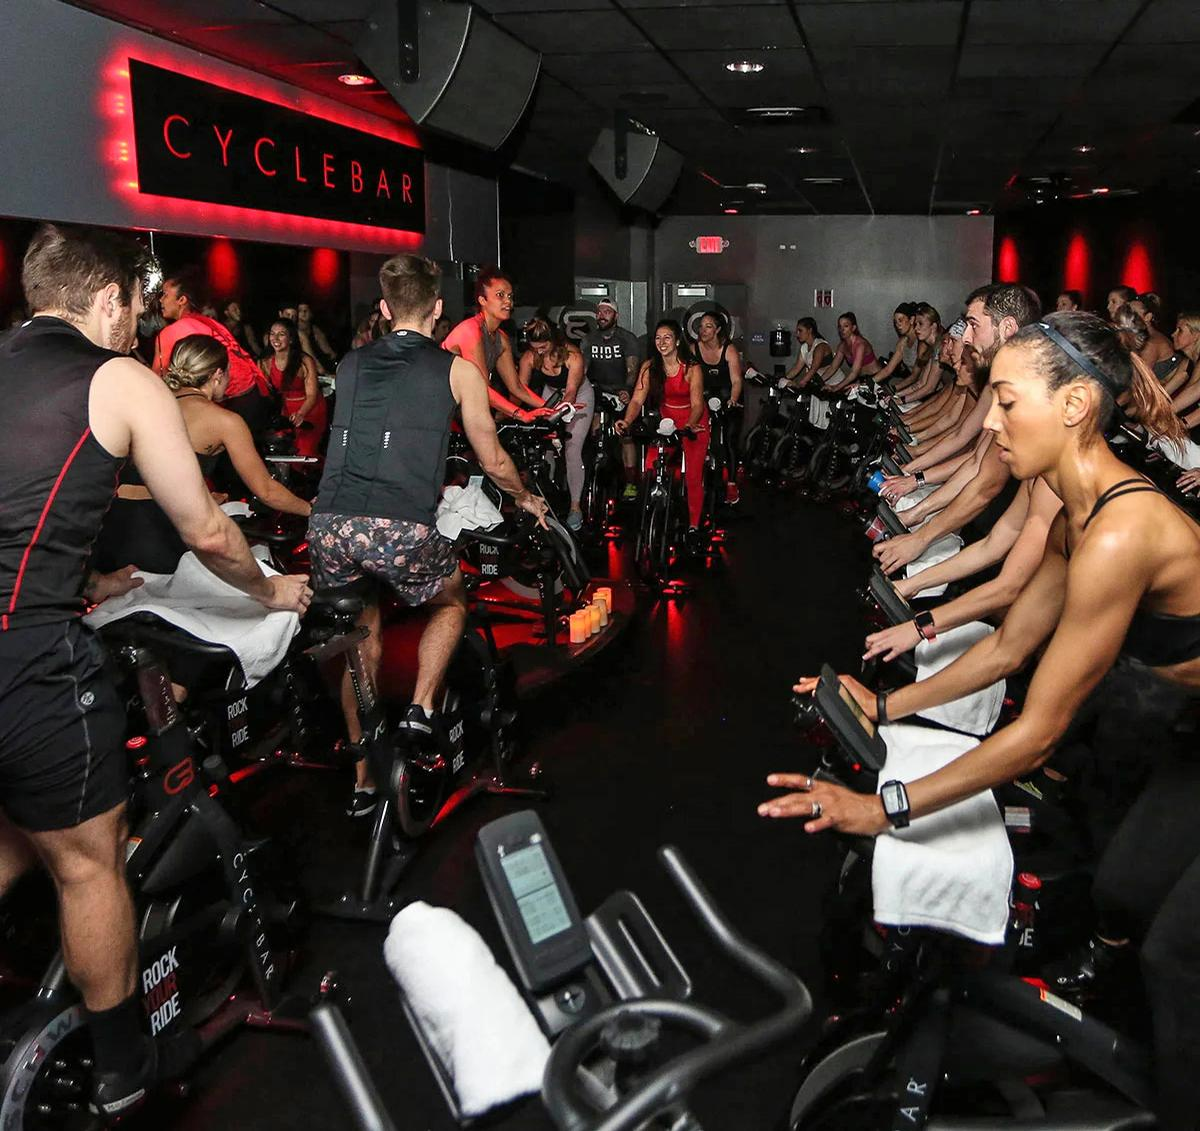 The first Australian CycleBar studio is expected to open in Currambine, Western Australia in September / Xponential Fitness/CycleBar